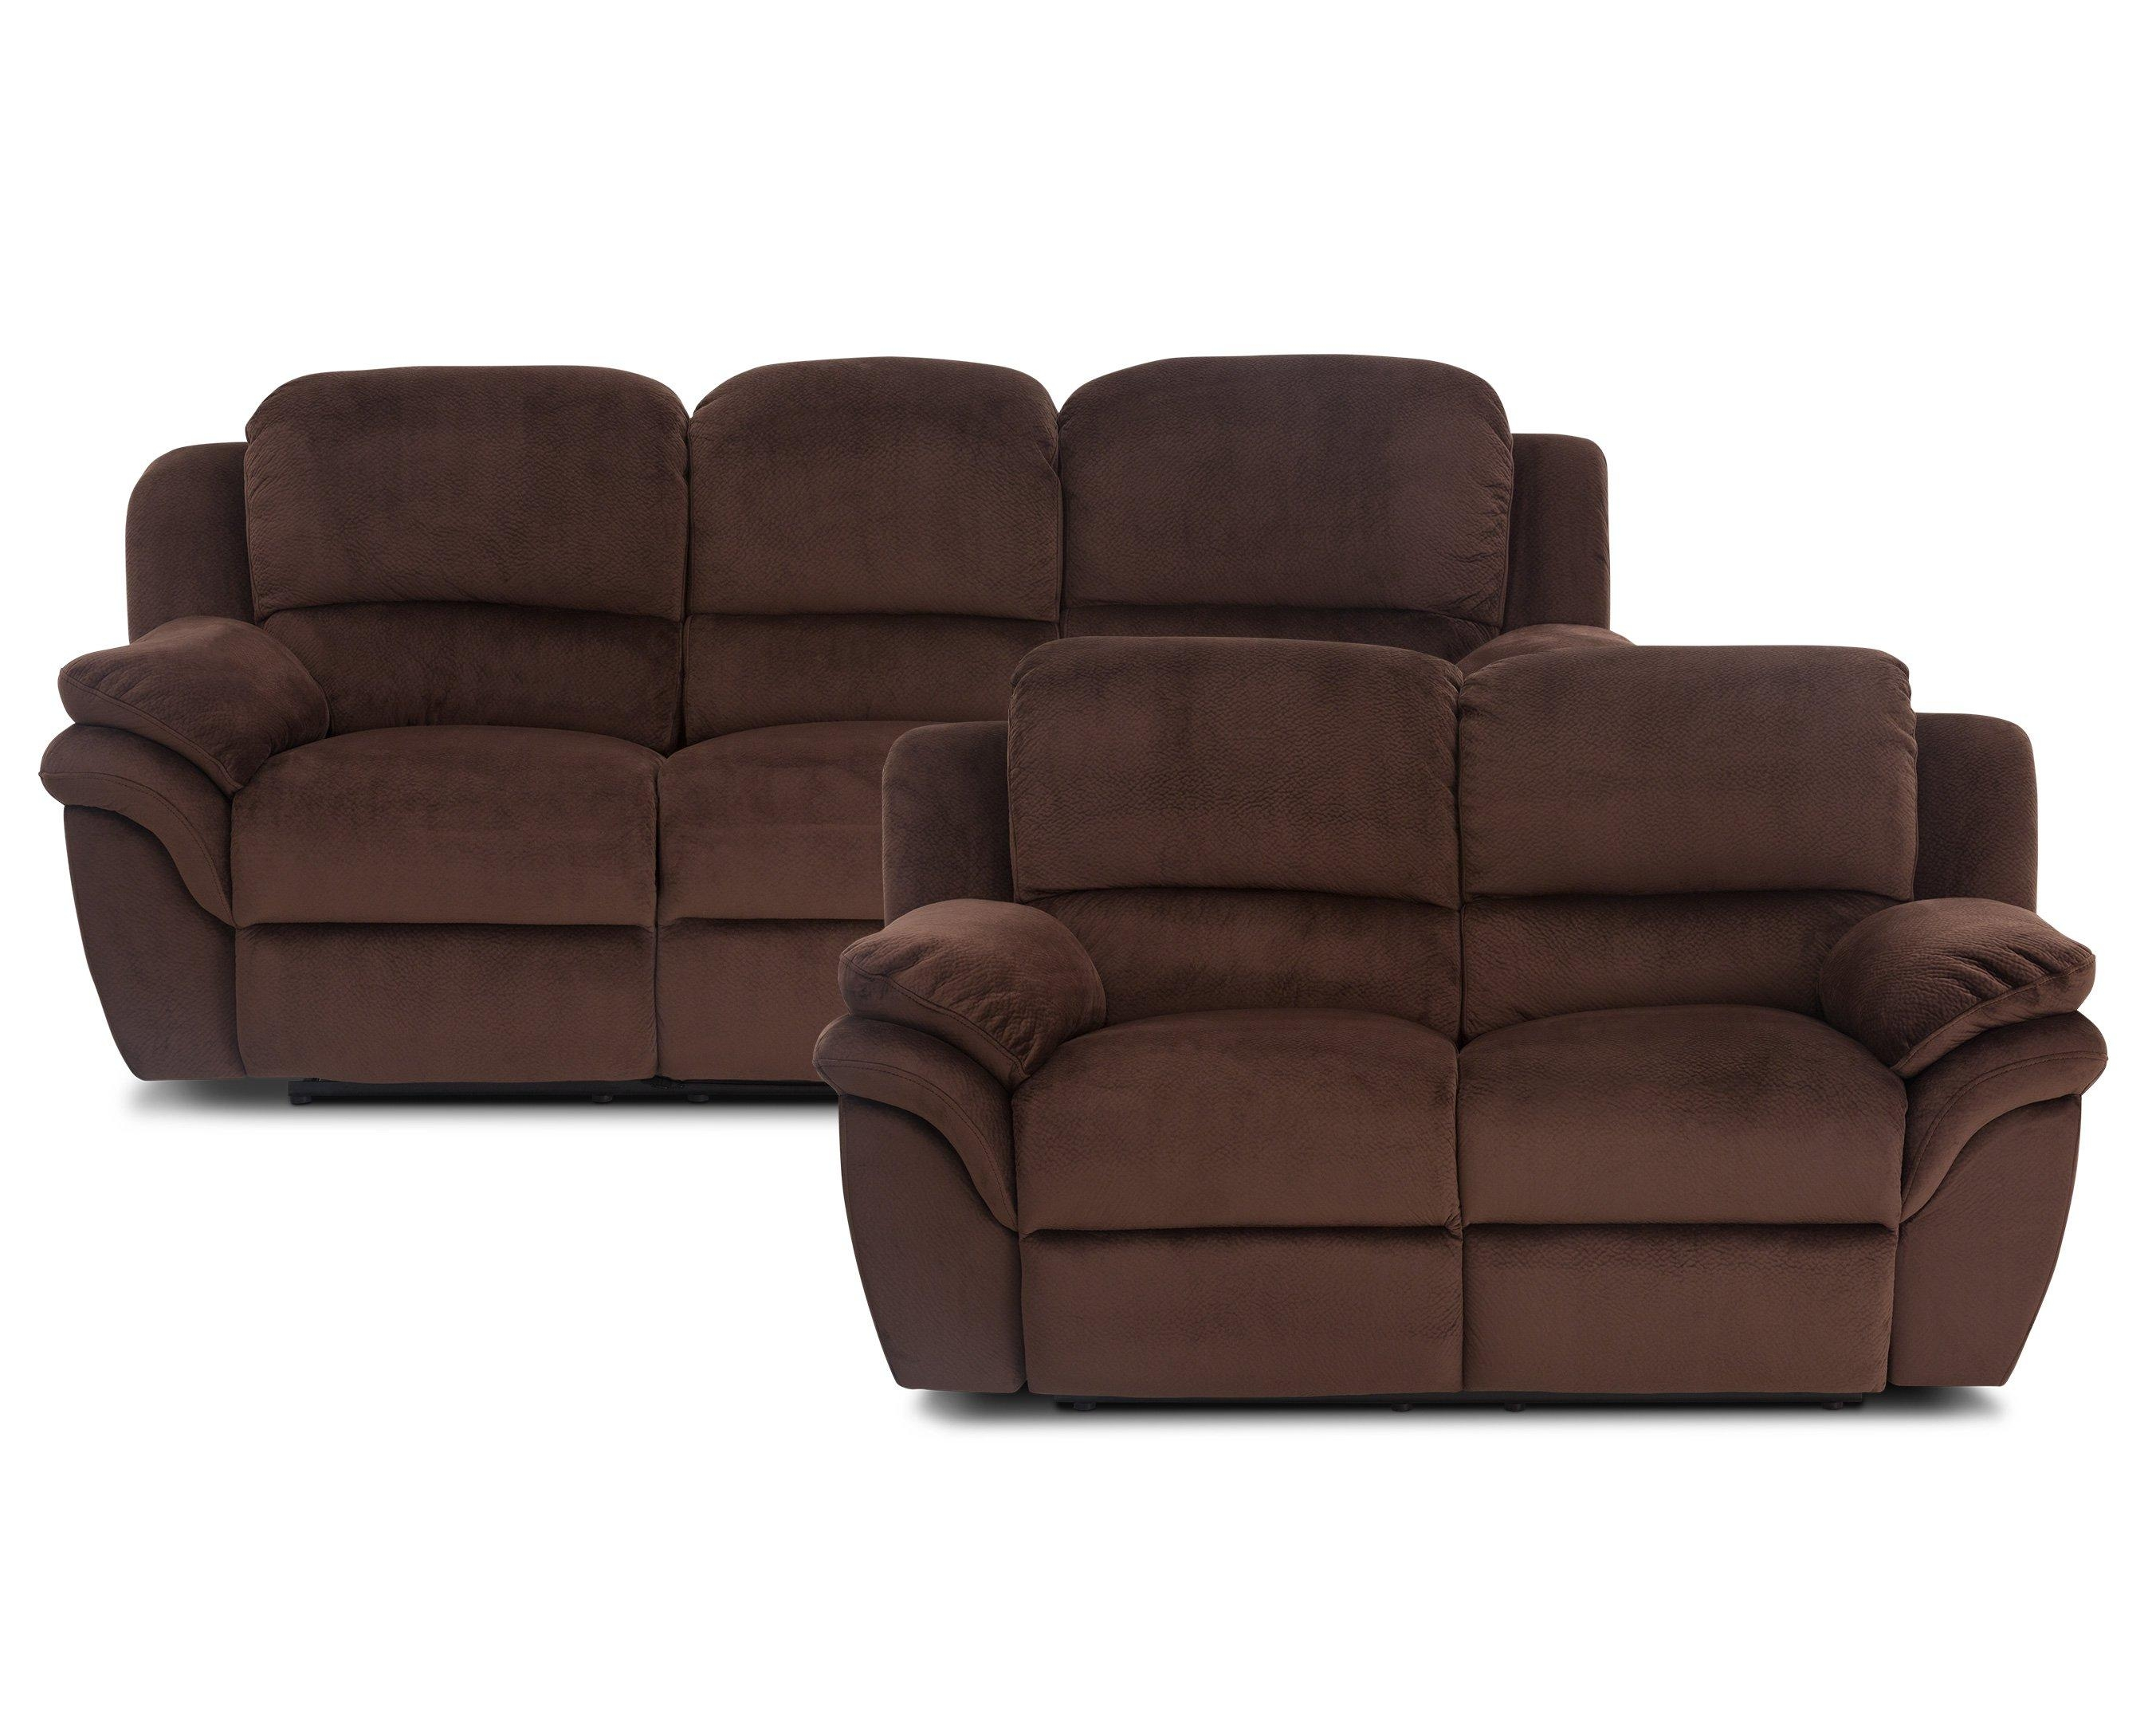 Living Room Furniture, Sofas & Sectionals | Furniture Row Regarding Recliner Sofa Chairs (Image 15 of 20)